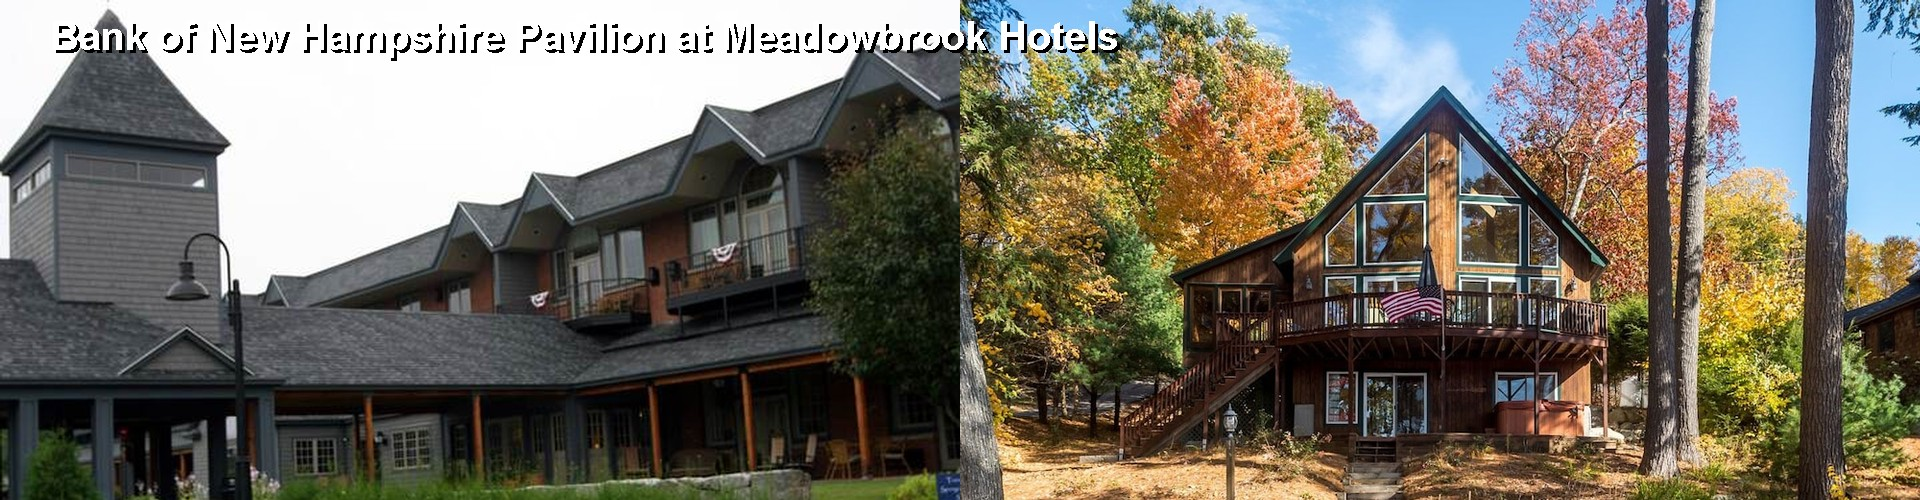 5 Best Hotels Near Bank Of New Hampshire Pavilion At Meadowbrook